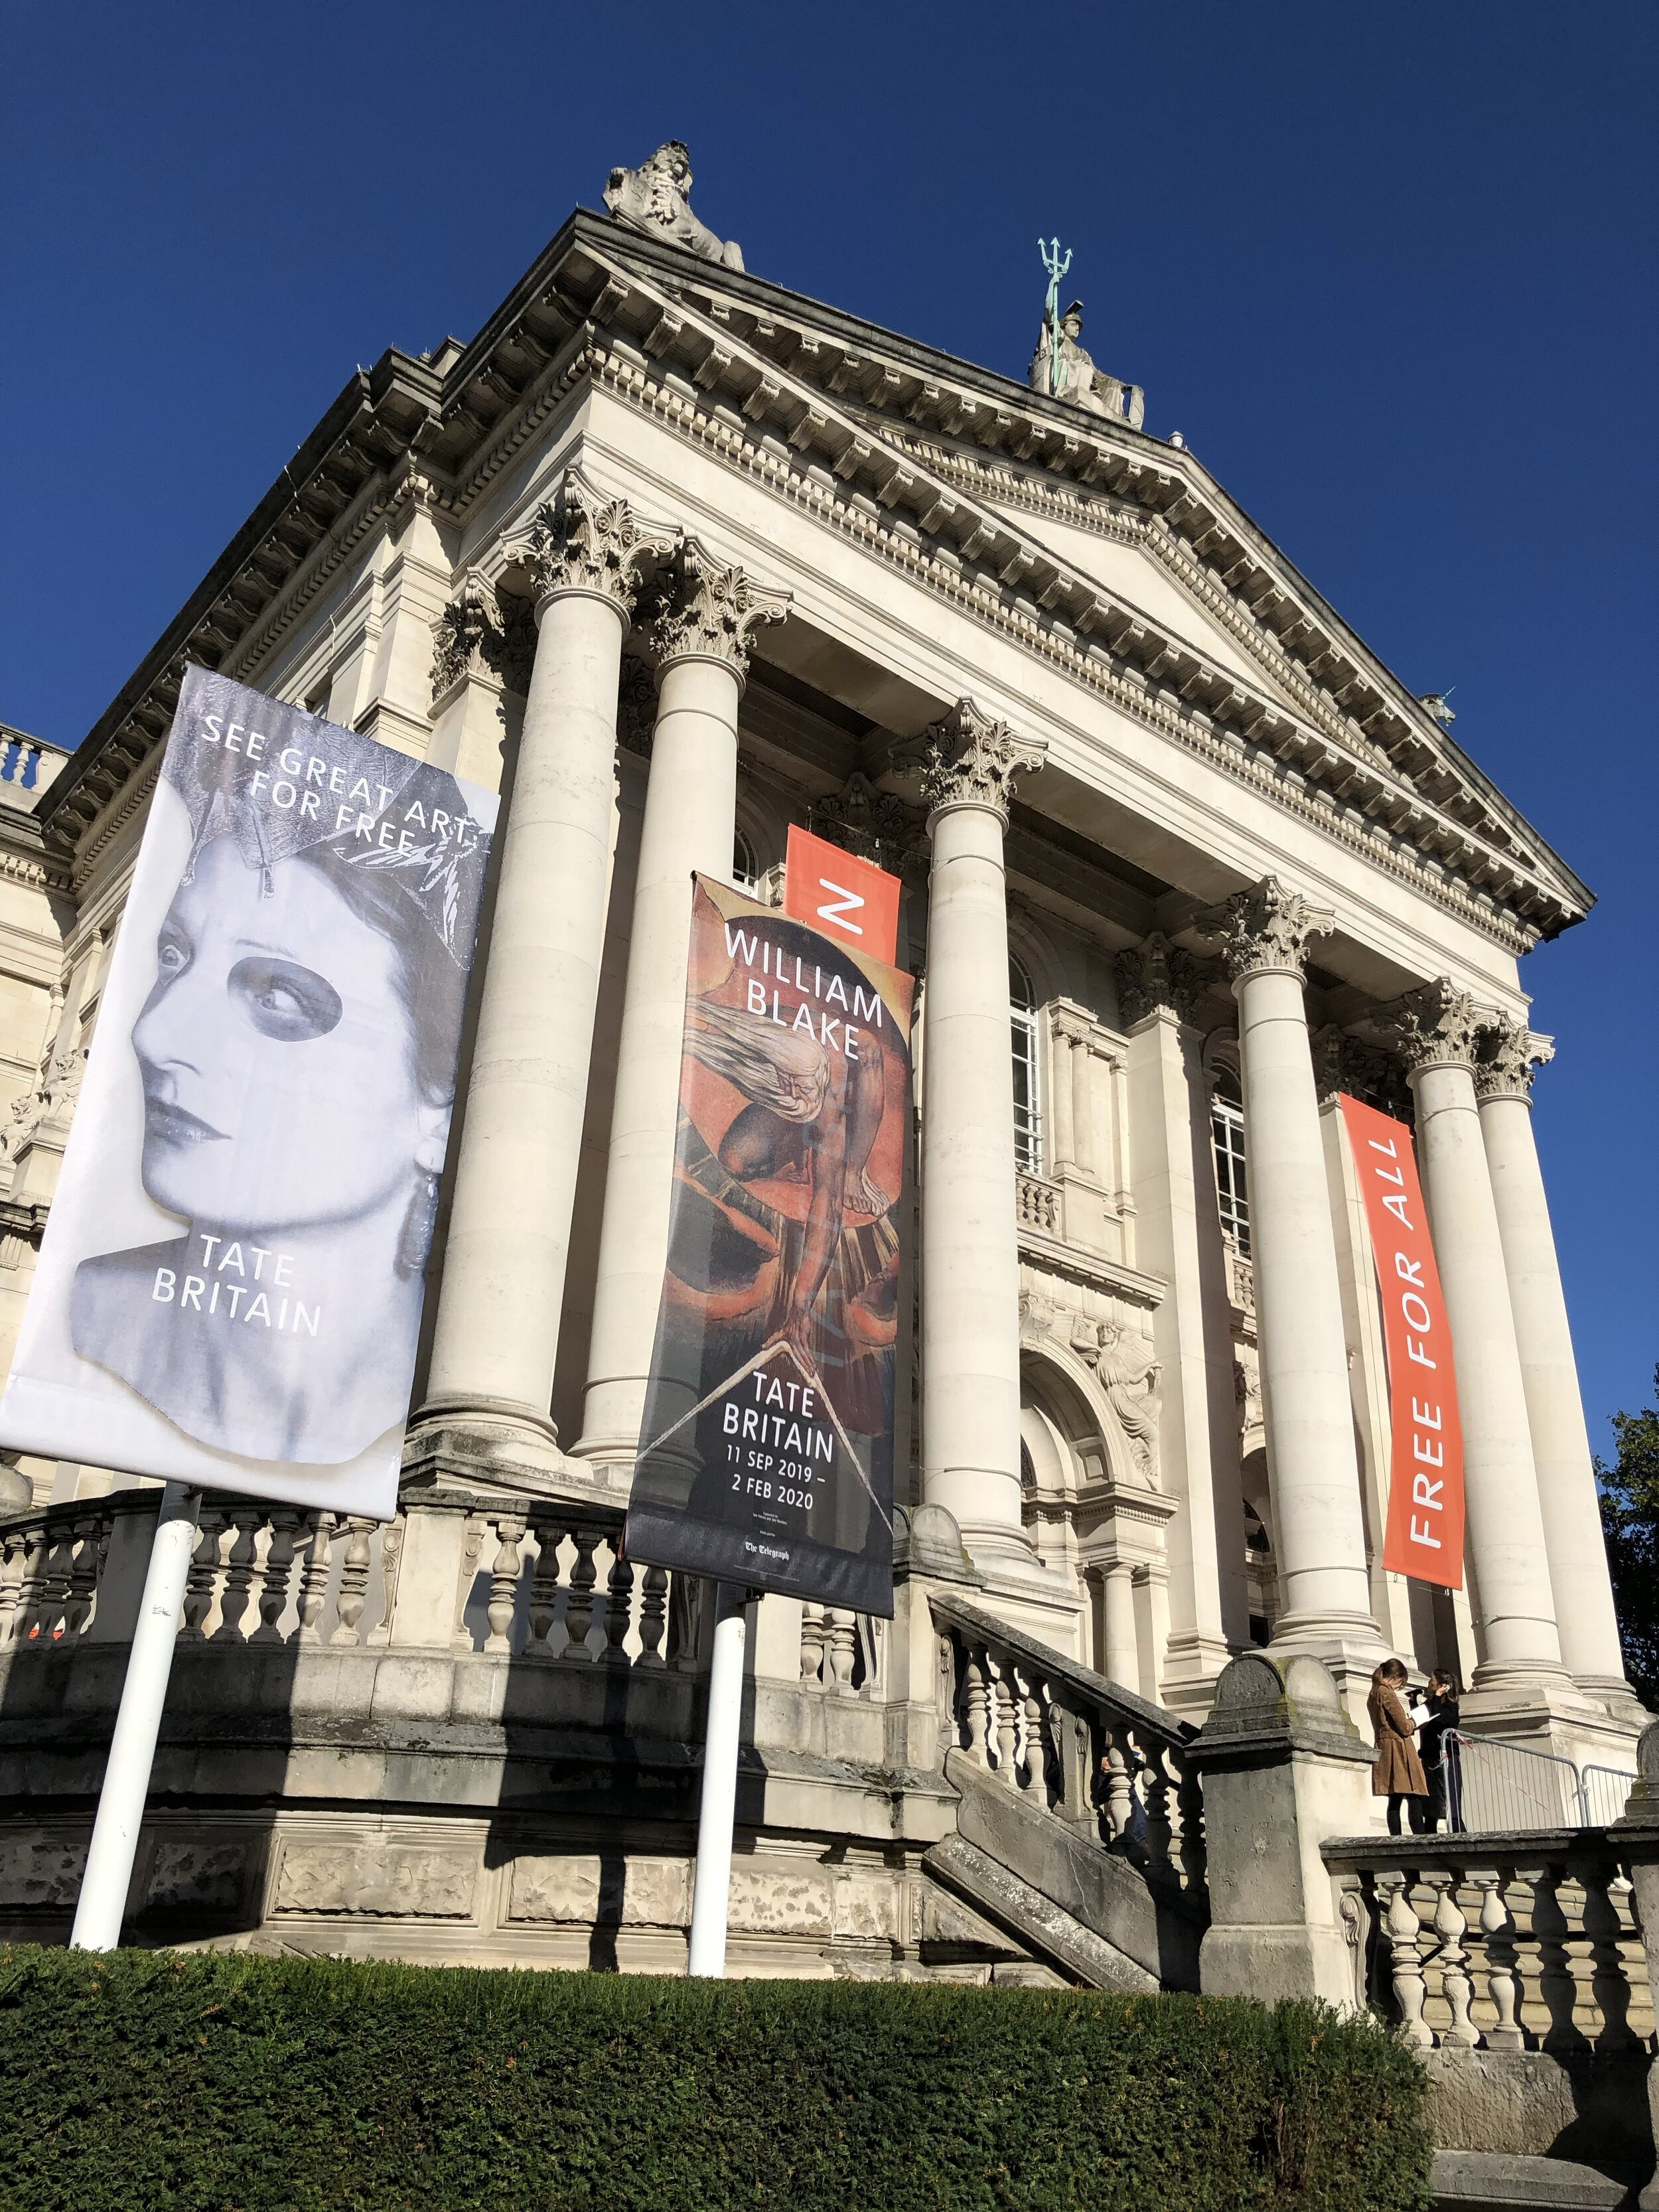 Tate Britain - on my list for next time